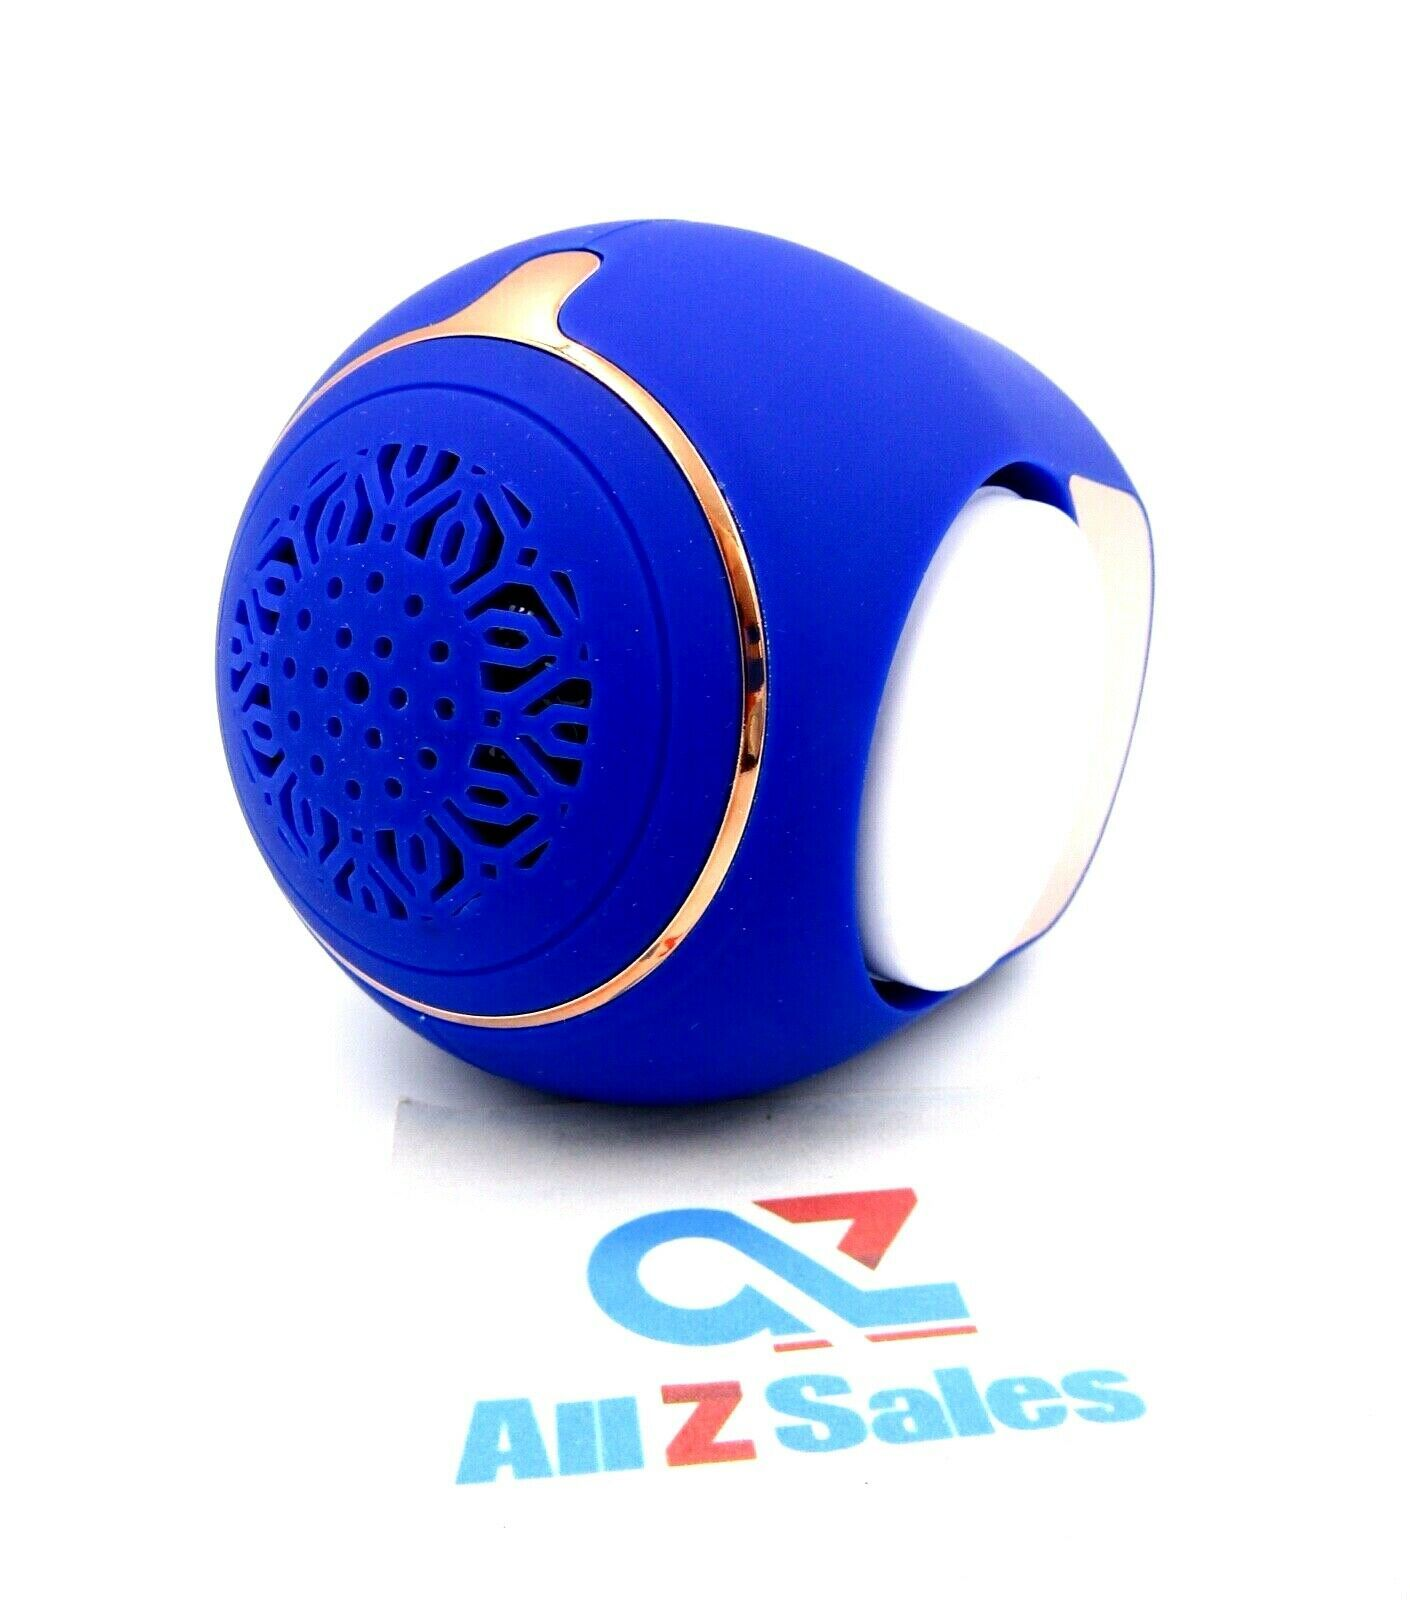 Primary image for Golden Eggs Wireless Mini Bluetooth Speaker, Portable. FZ-07 Blue Color - New